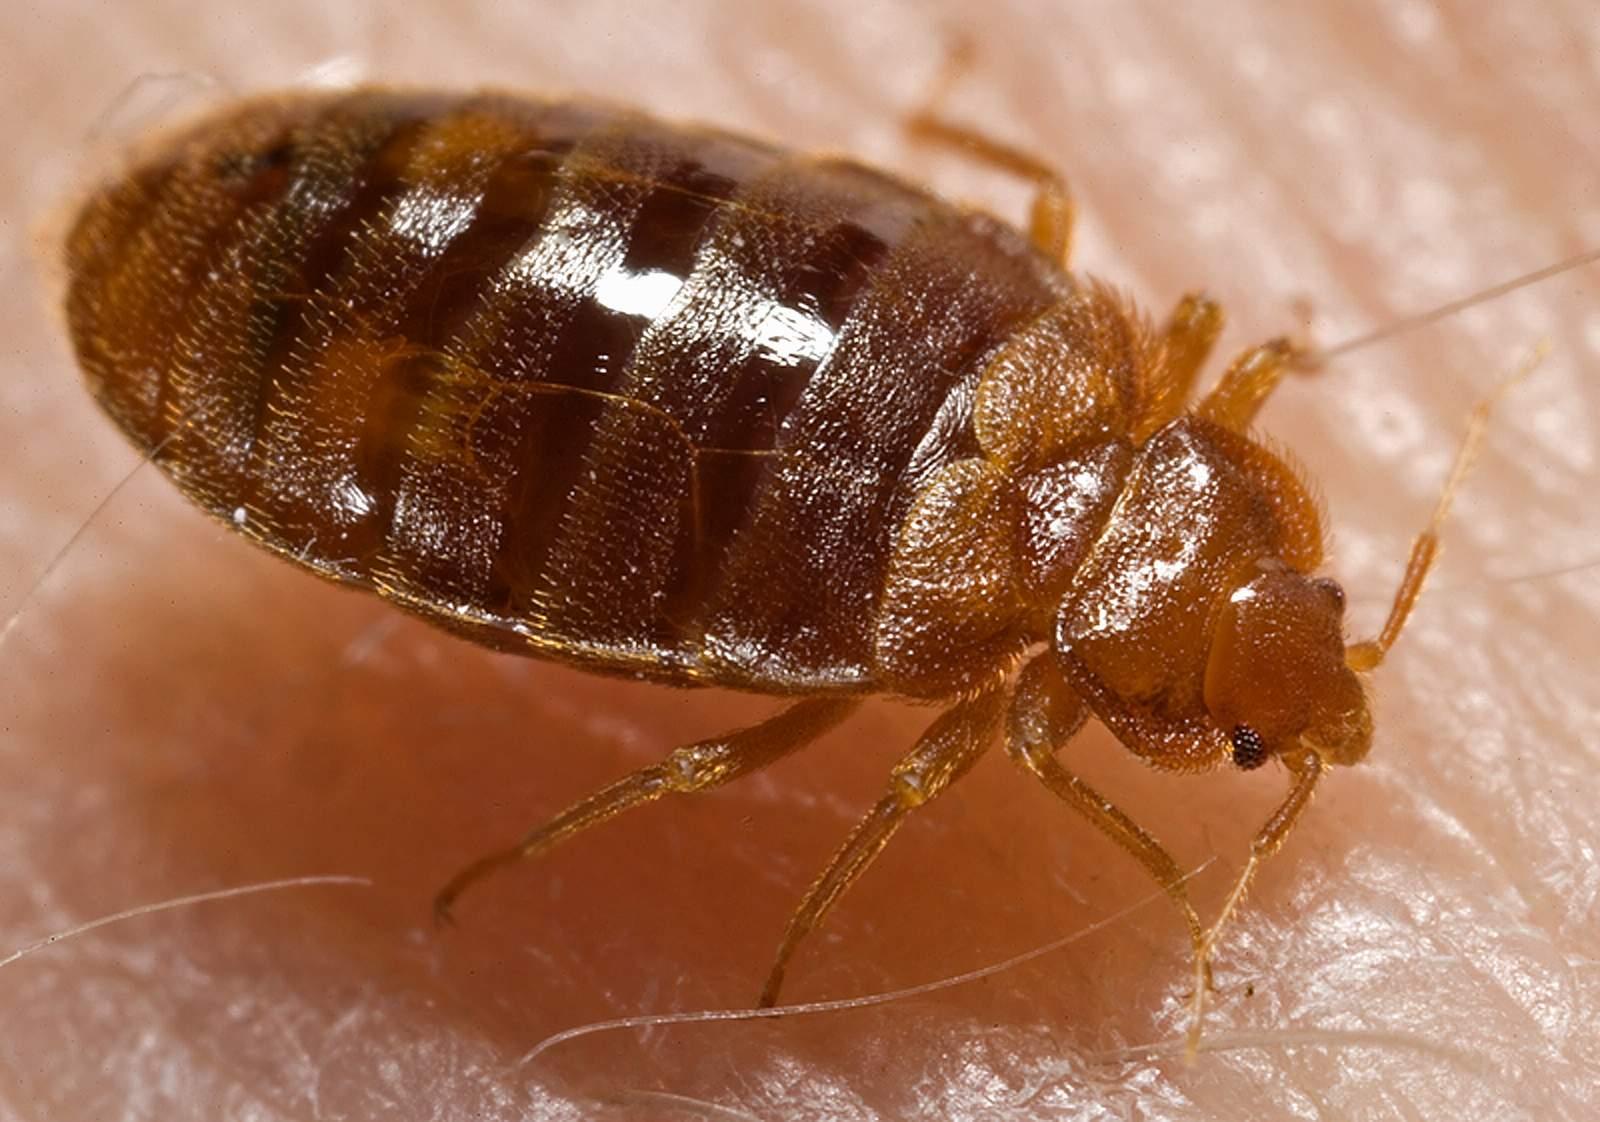 Don't get the travel bed bug!